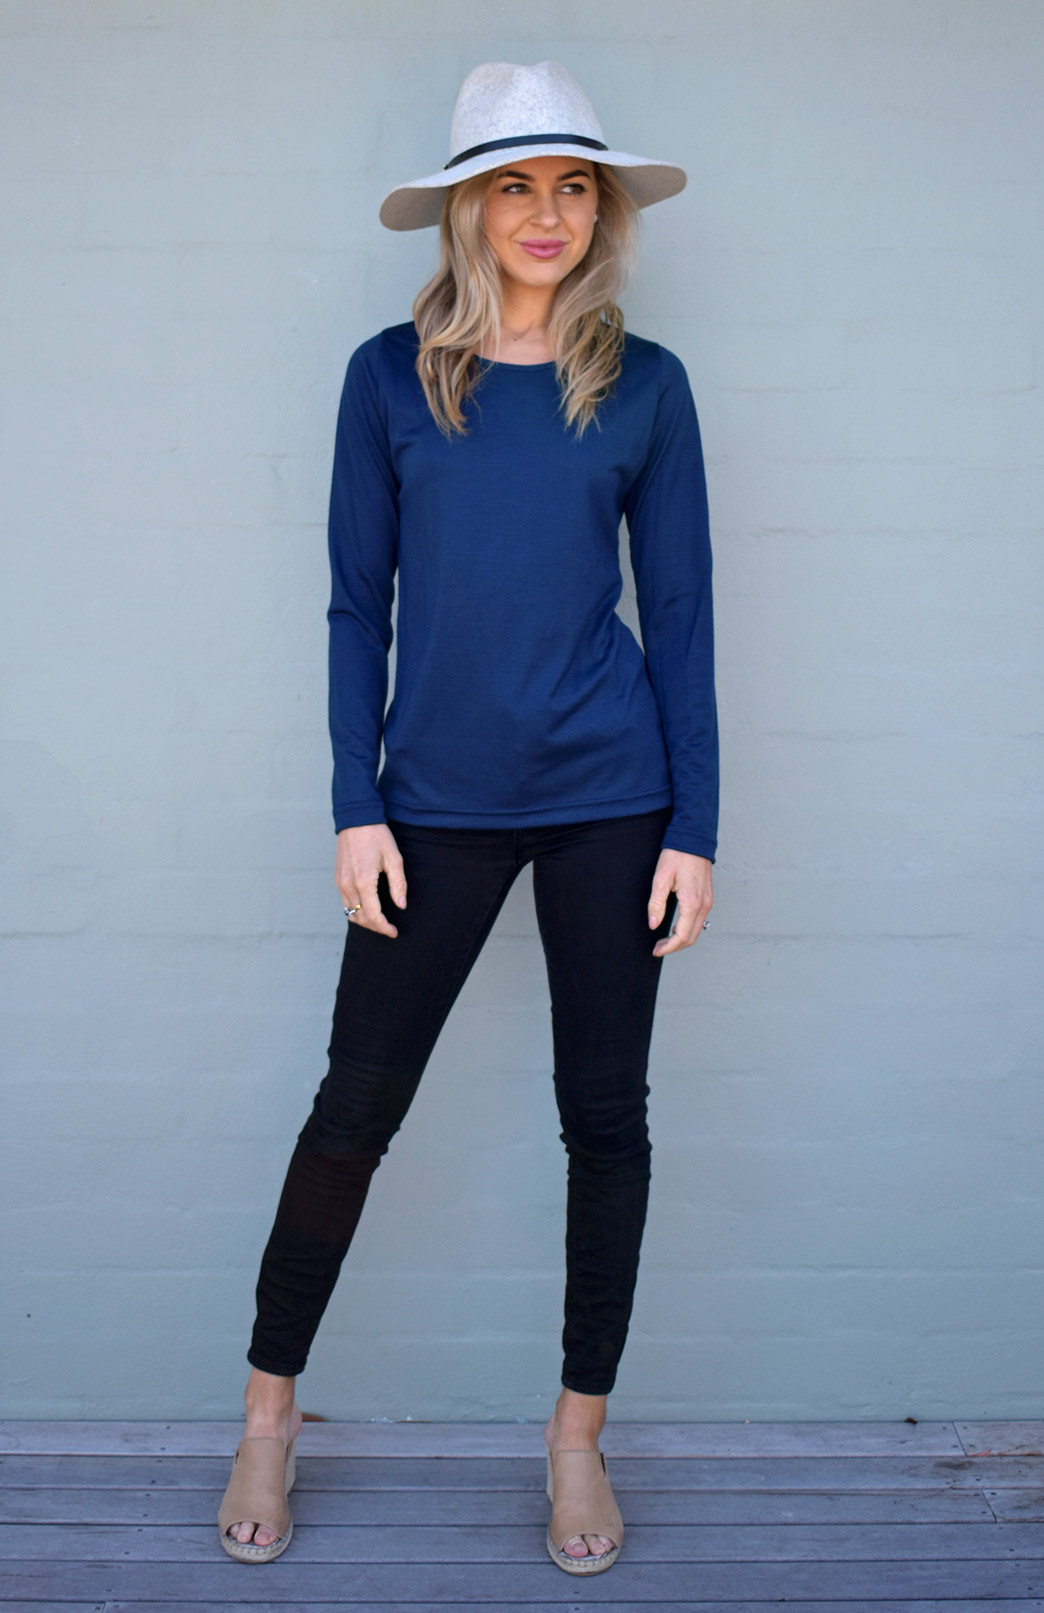 Round Neck Top - Plain - Women's Ink Blue Long Sleeved Merino Wool Thermal Top - Smitten Merino Tasmania Australia